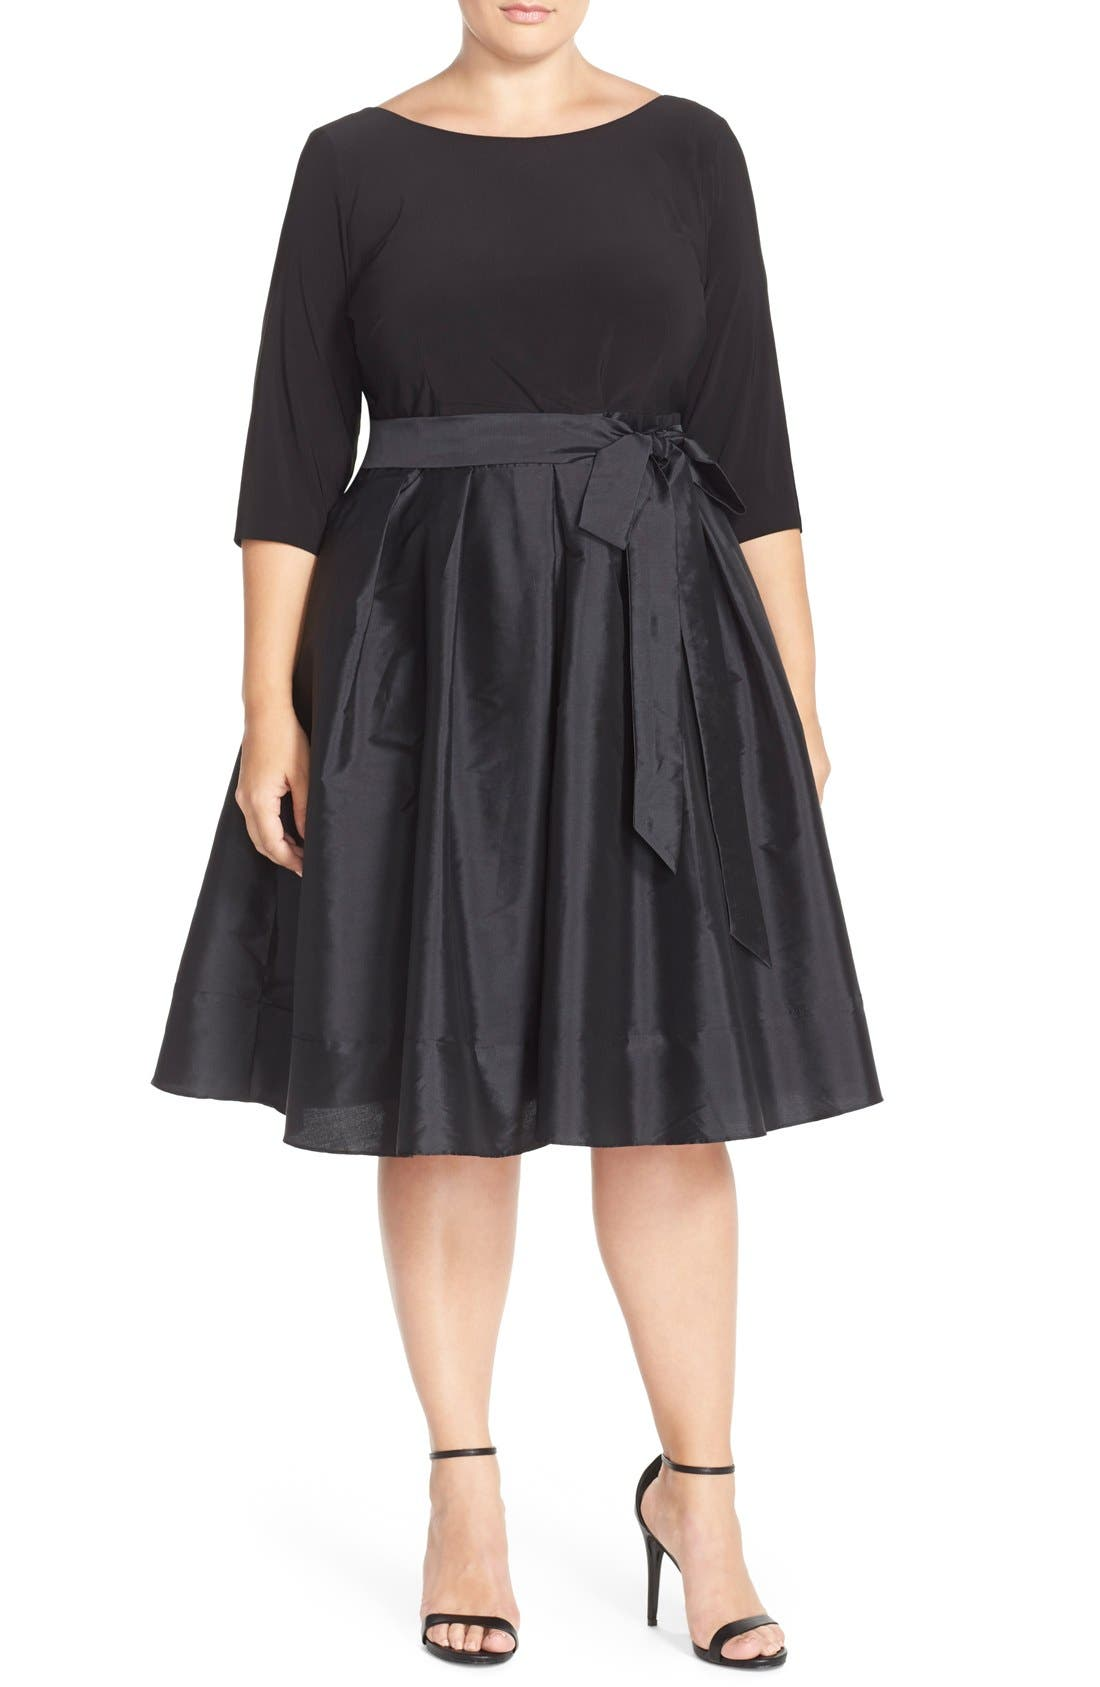 ADRIANNA PAPELL Mixed Media Fit & Flare Dress